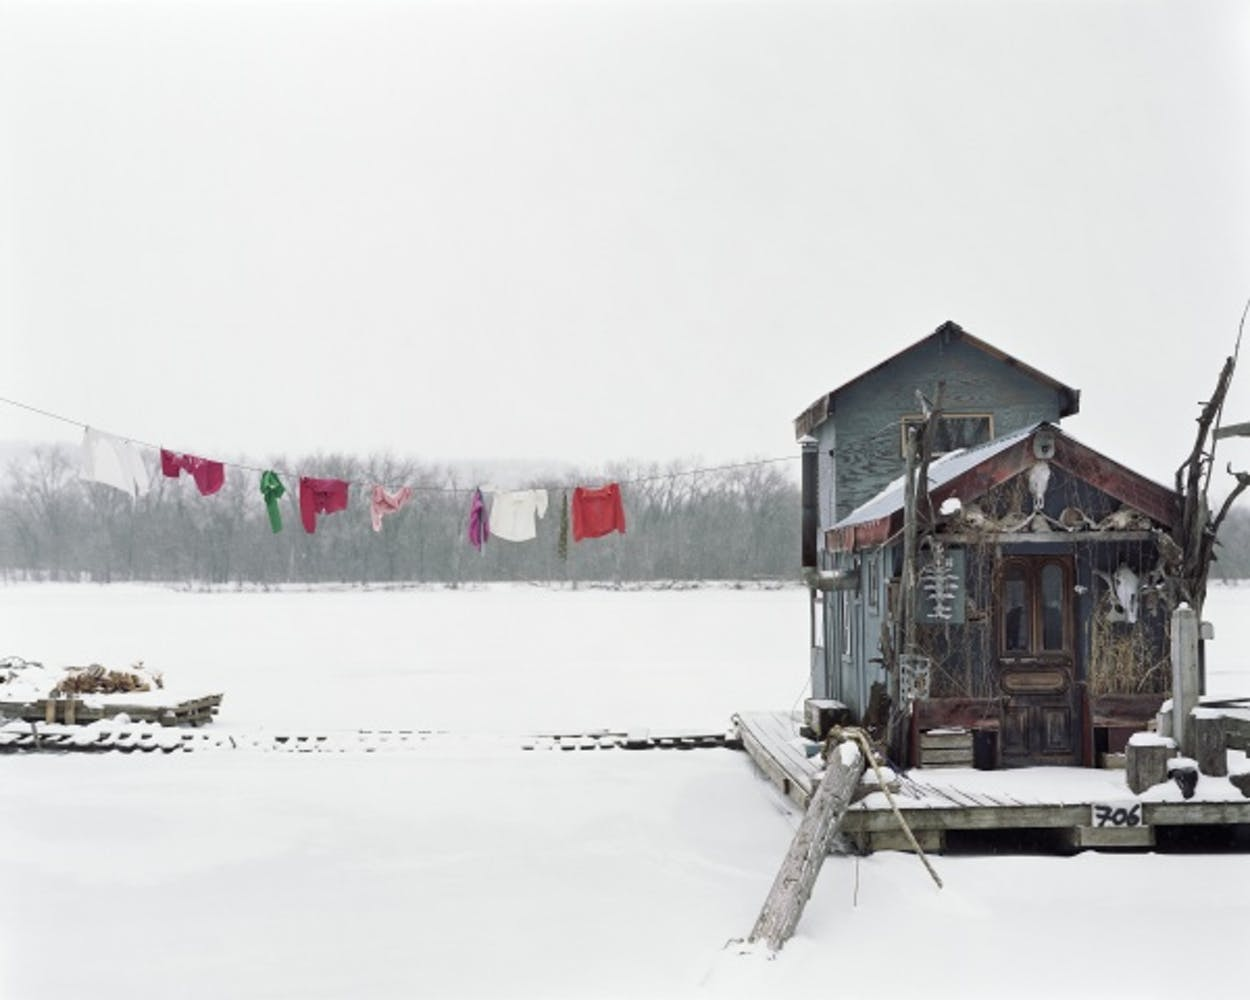 Alec Soth, Peter's Houseboat, Winona, Minnesota, 2002